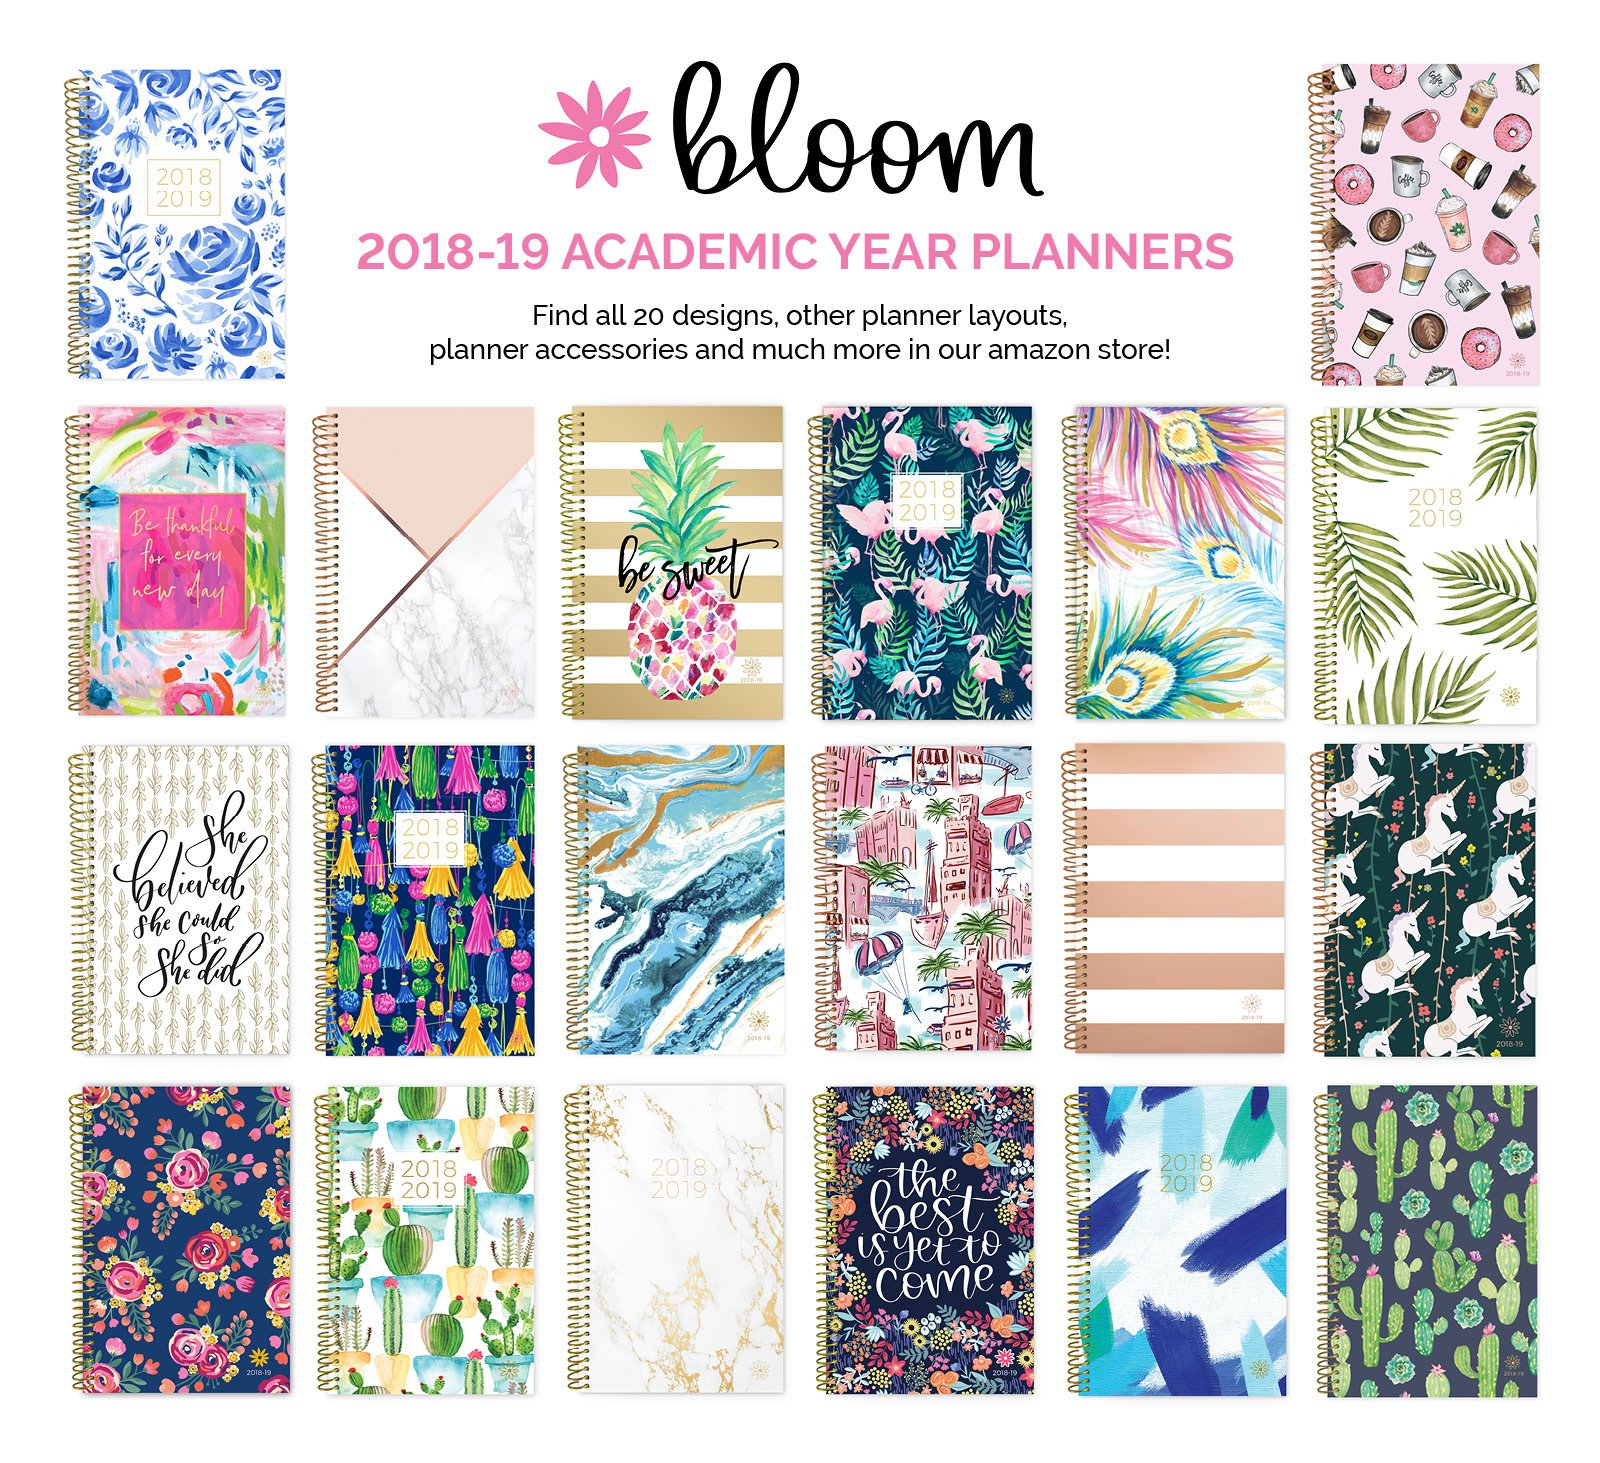 bloom daily planners 2018-2019 Academic Year Day Planner - Monthly and Weekly Calendar Book - Inspirational Dated Agenda Organizer - (August 2018 - July 2019) - 6'' x 8.25'' - Marble by bloom daily planners (Image #6)